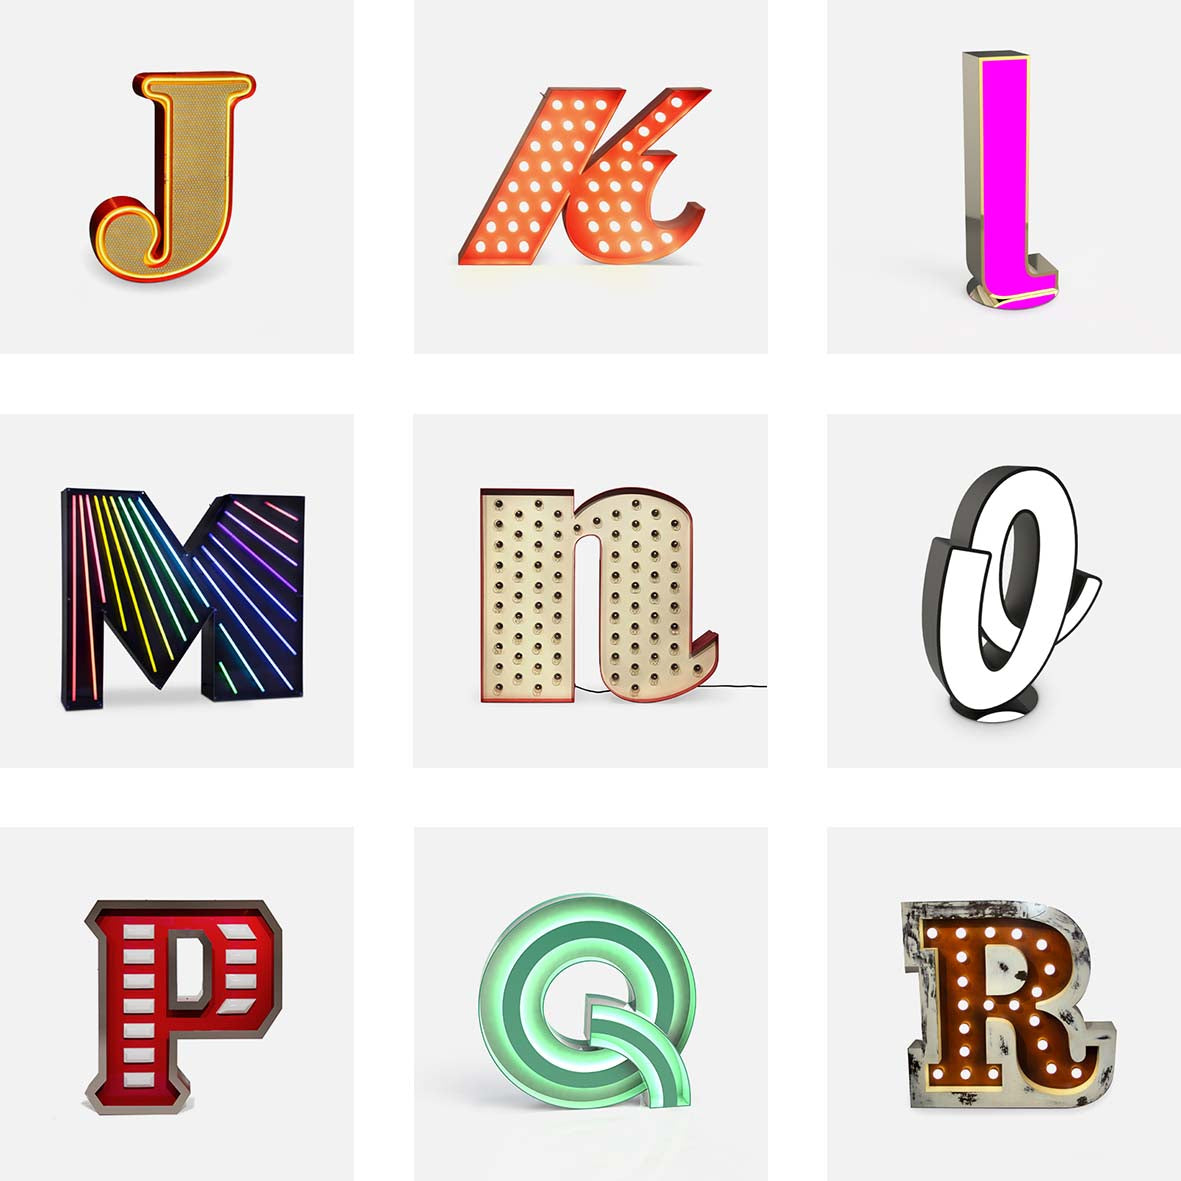 Delightful Graphic collection letters J - R